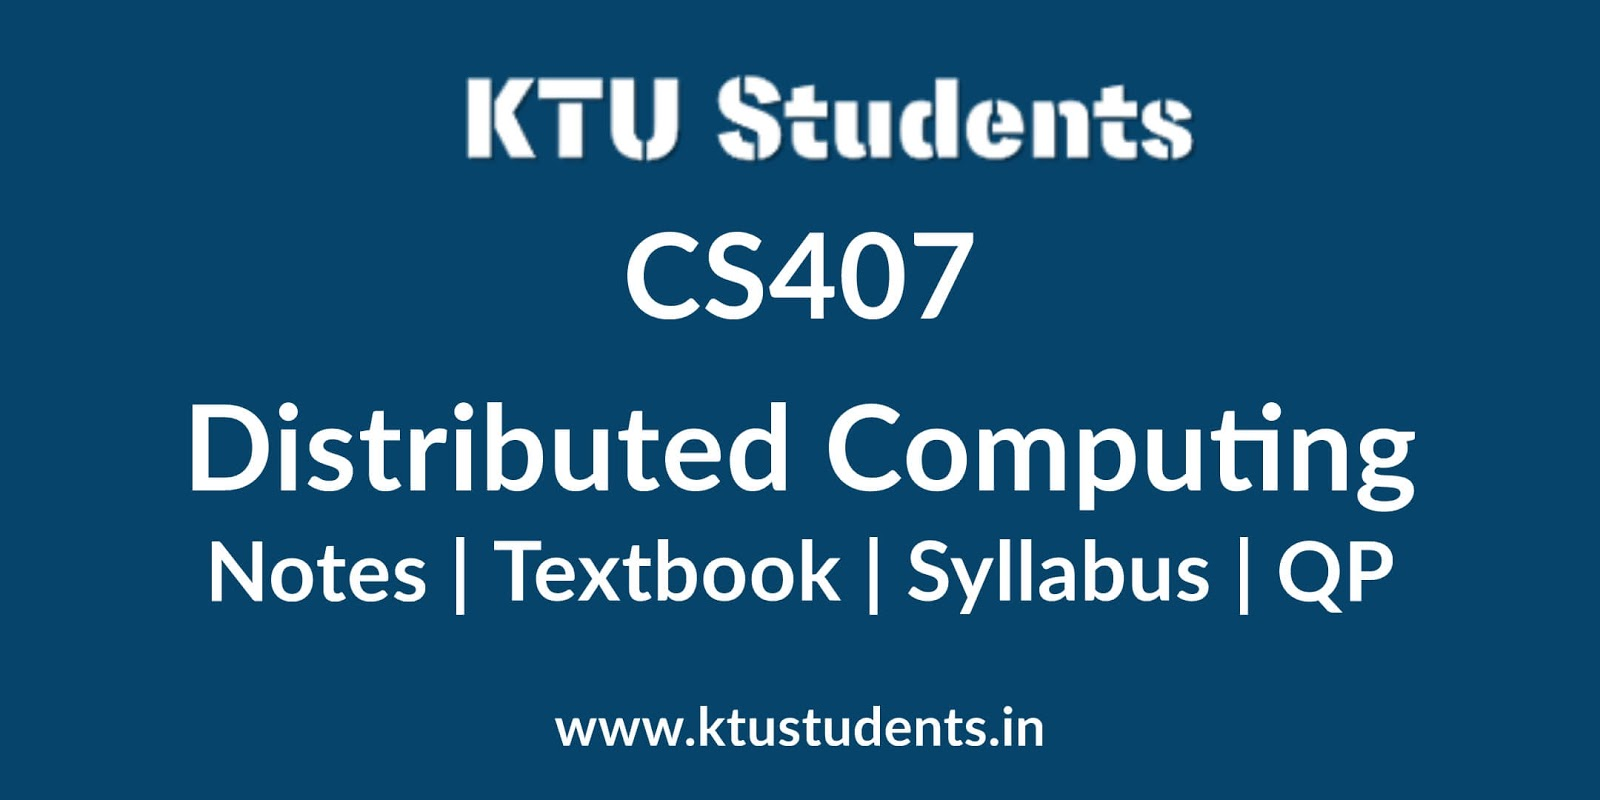 Cs407 Distributed Computing Notes Textbook Syllabus Question Papers S7 Cse Ktu Students Engineering Notes Syllabus Textbooks Questions